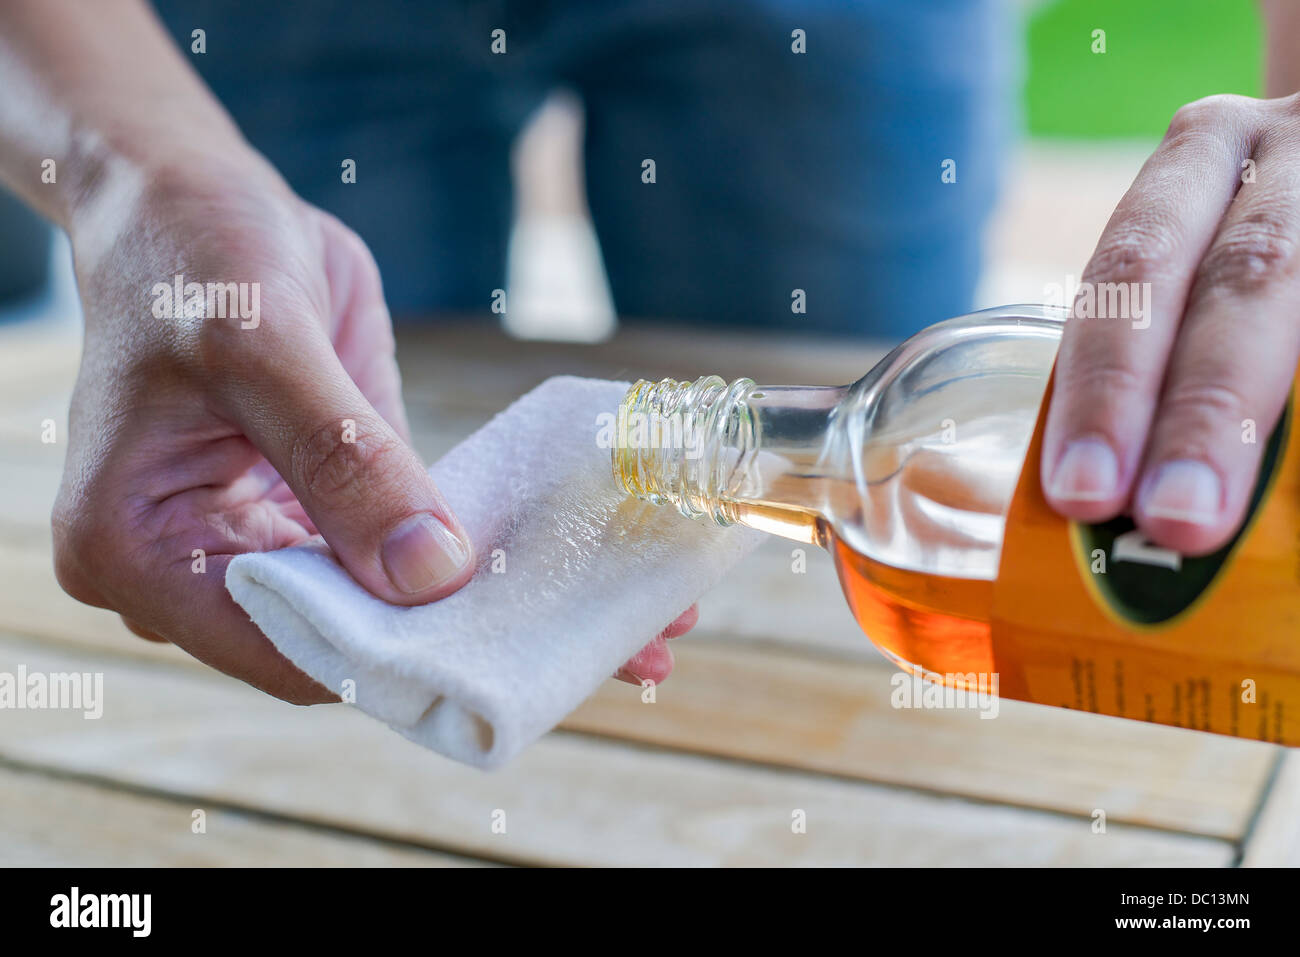 impregnate wooden table with oil - Stock Image